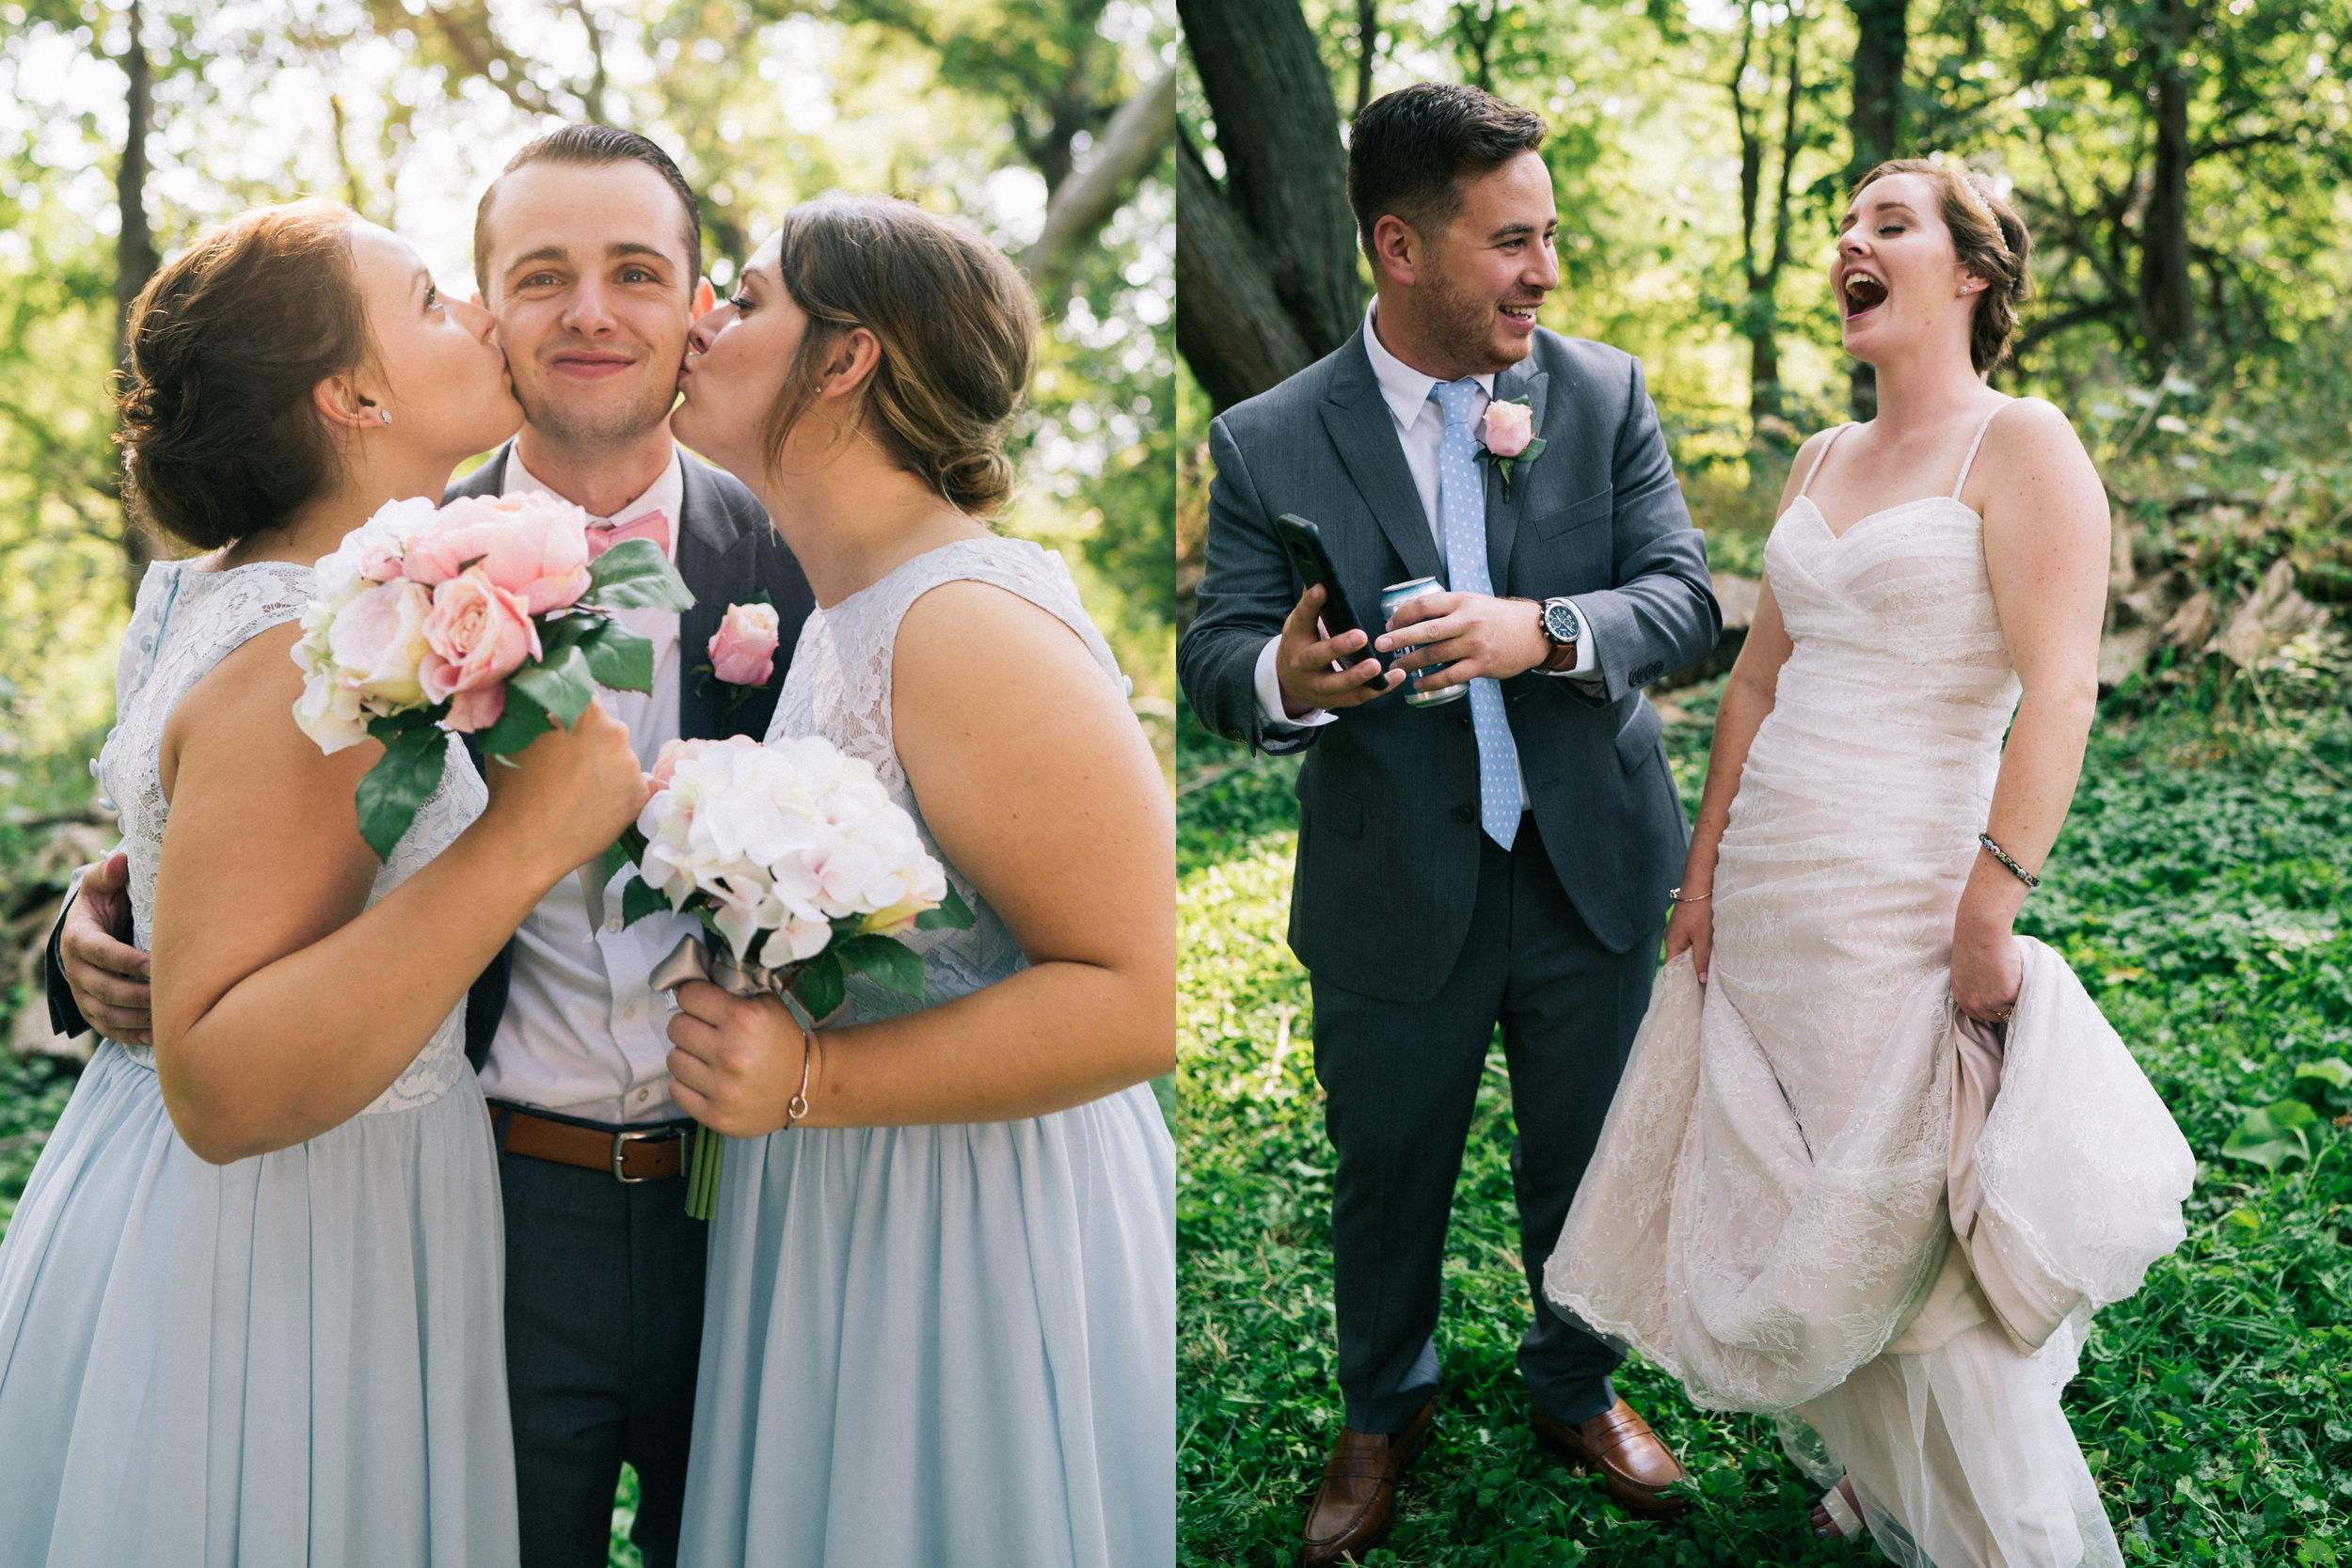 Omaha Nebraska Fine Art Film Wedding Photography Bonnie & Mark-24.jpg